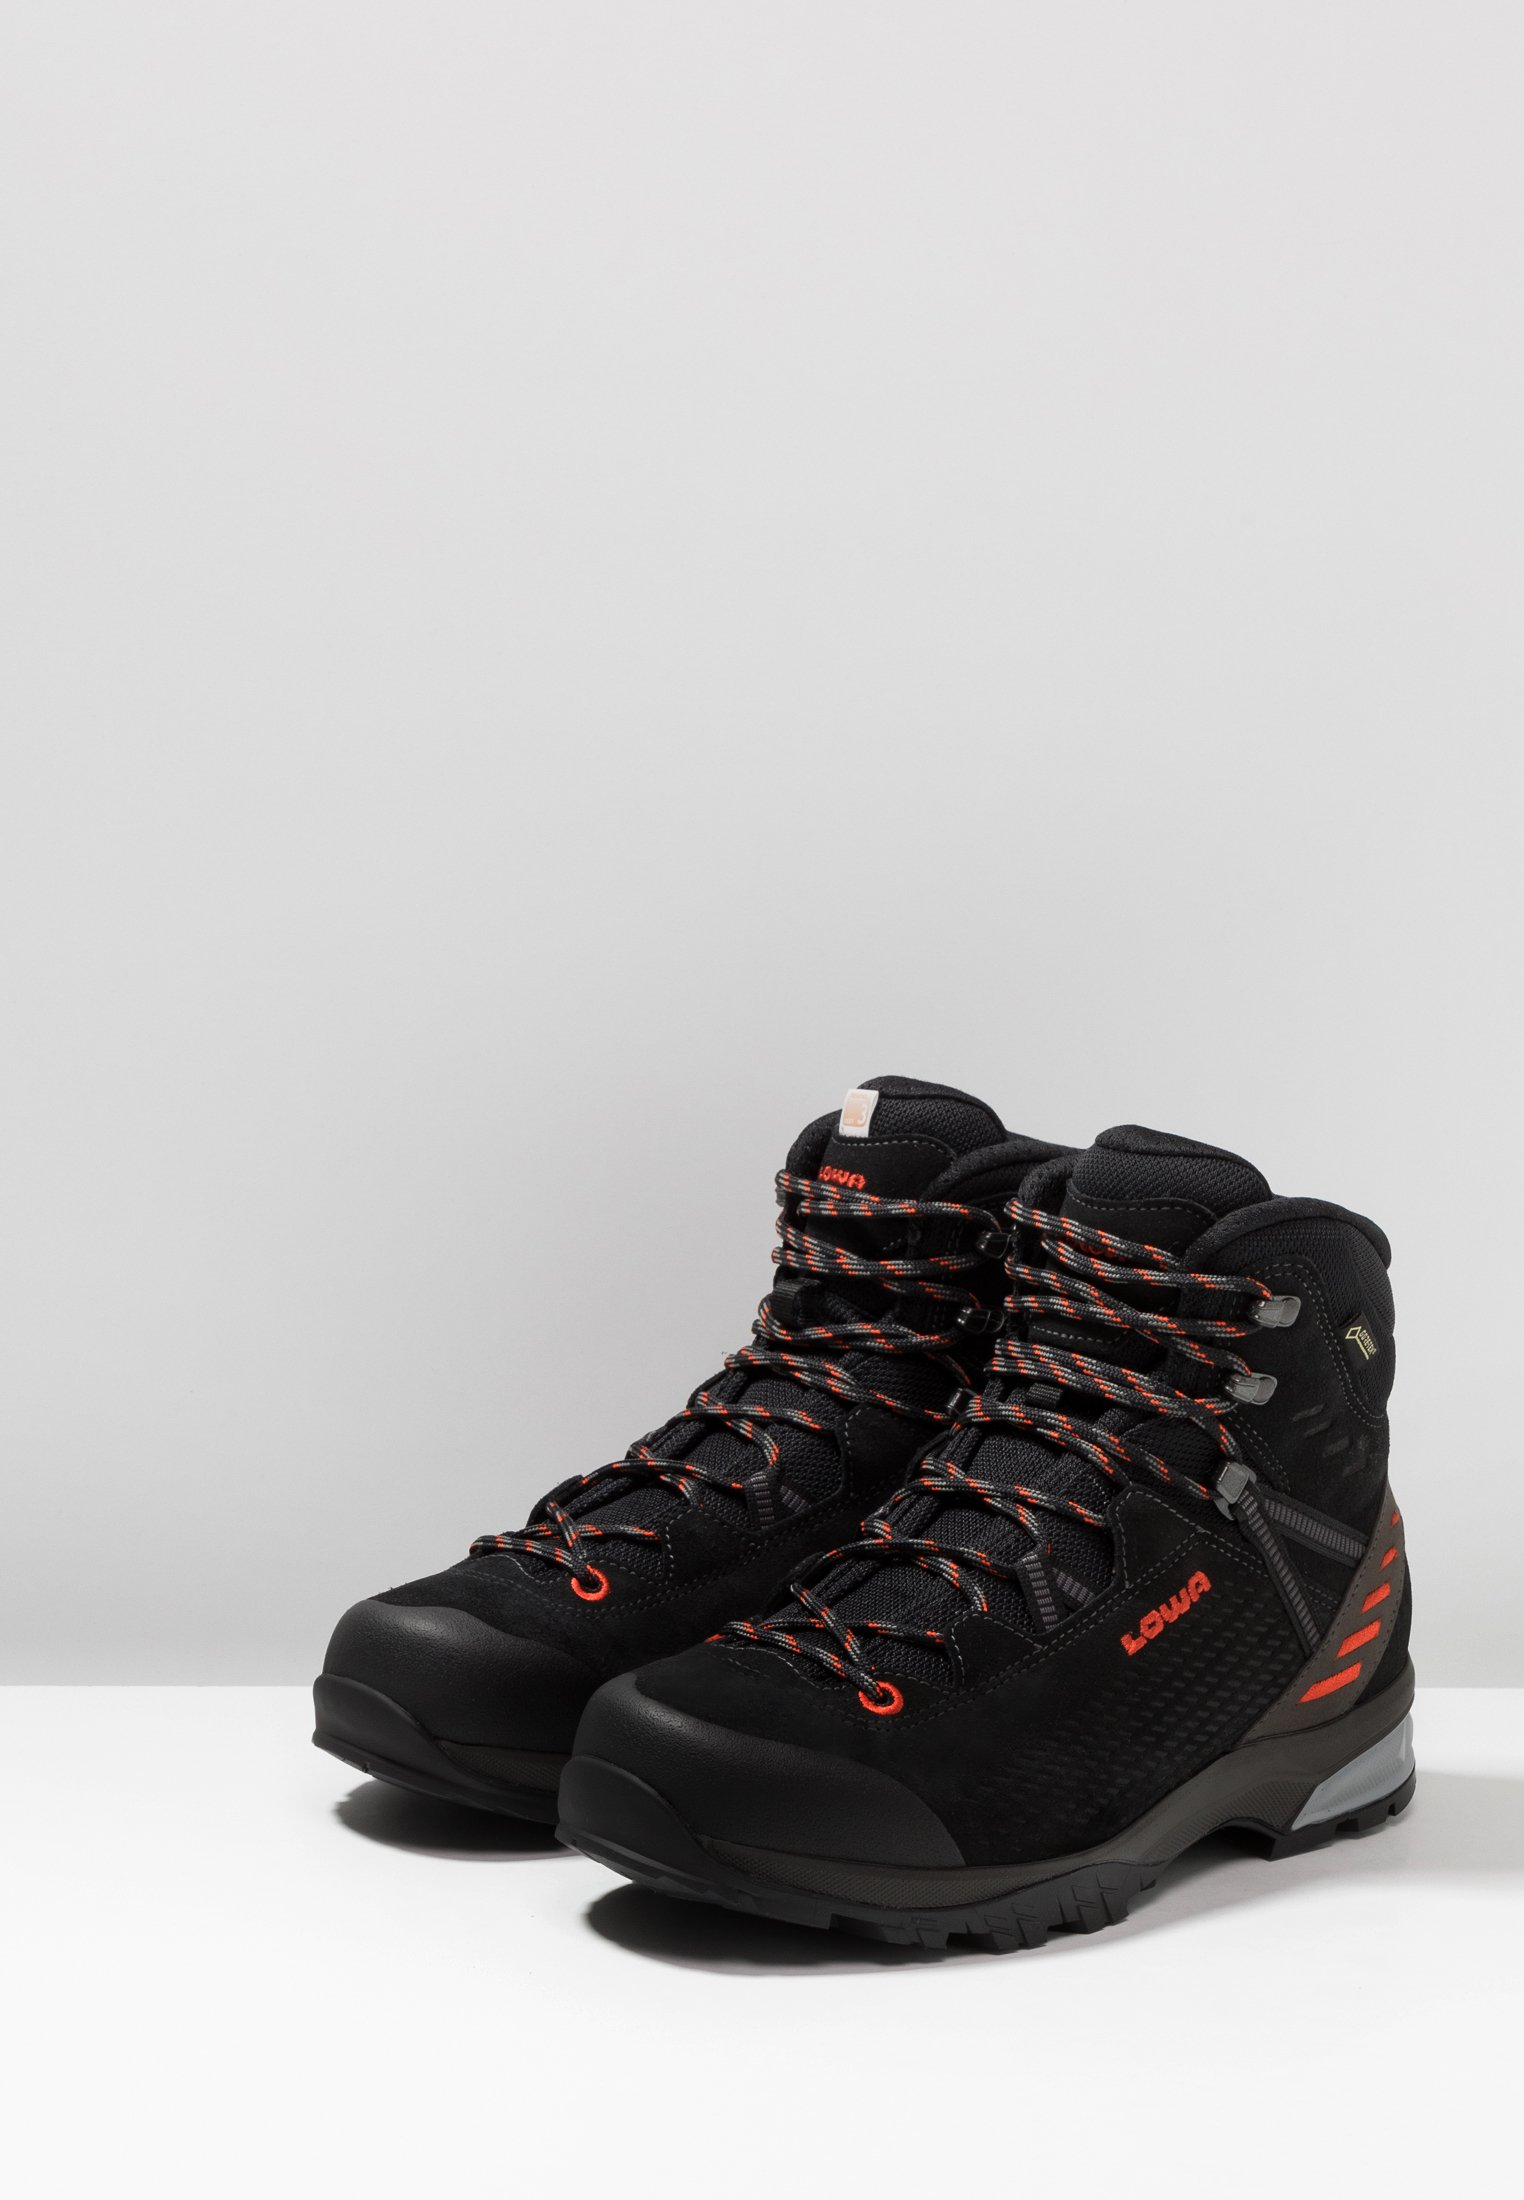 Lowa LEDRO GTX MID - Hikingschuh - schwarz/flame - Black Friday